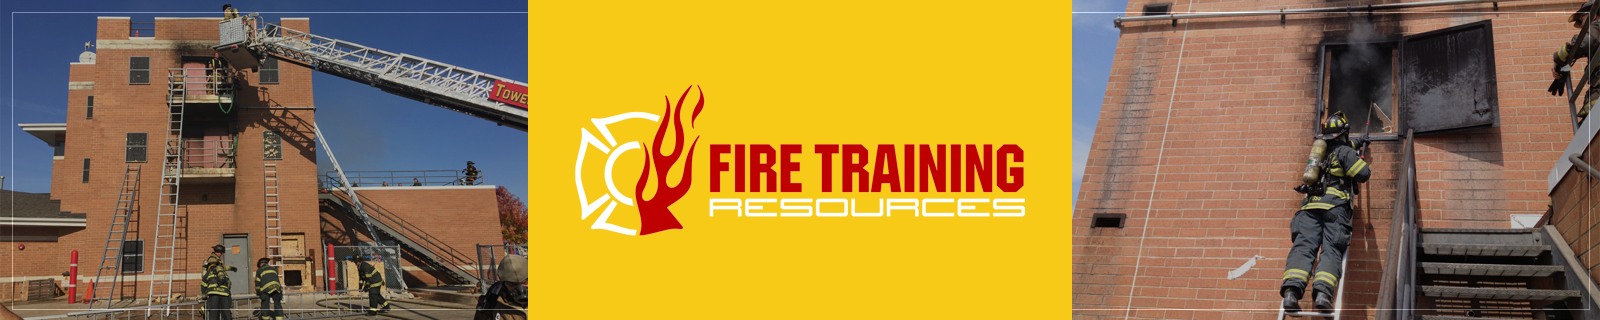 Fireground Tactics and Size-Up Training - Schaumburg, Illinois